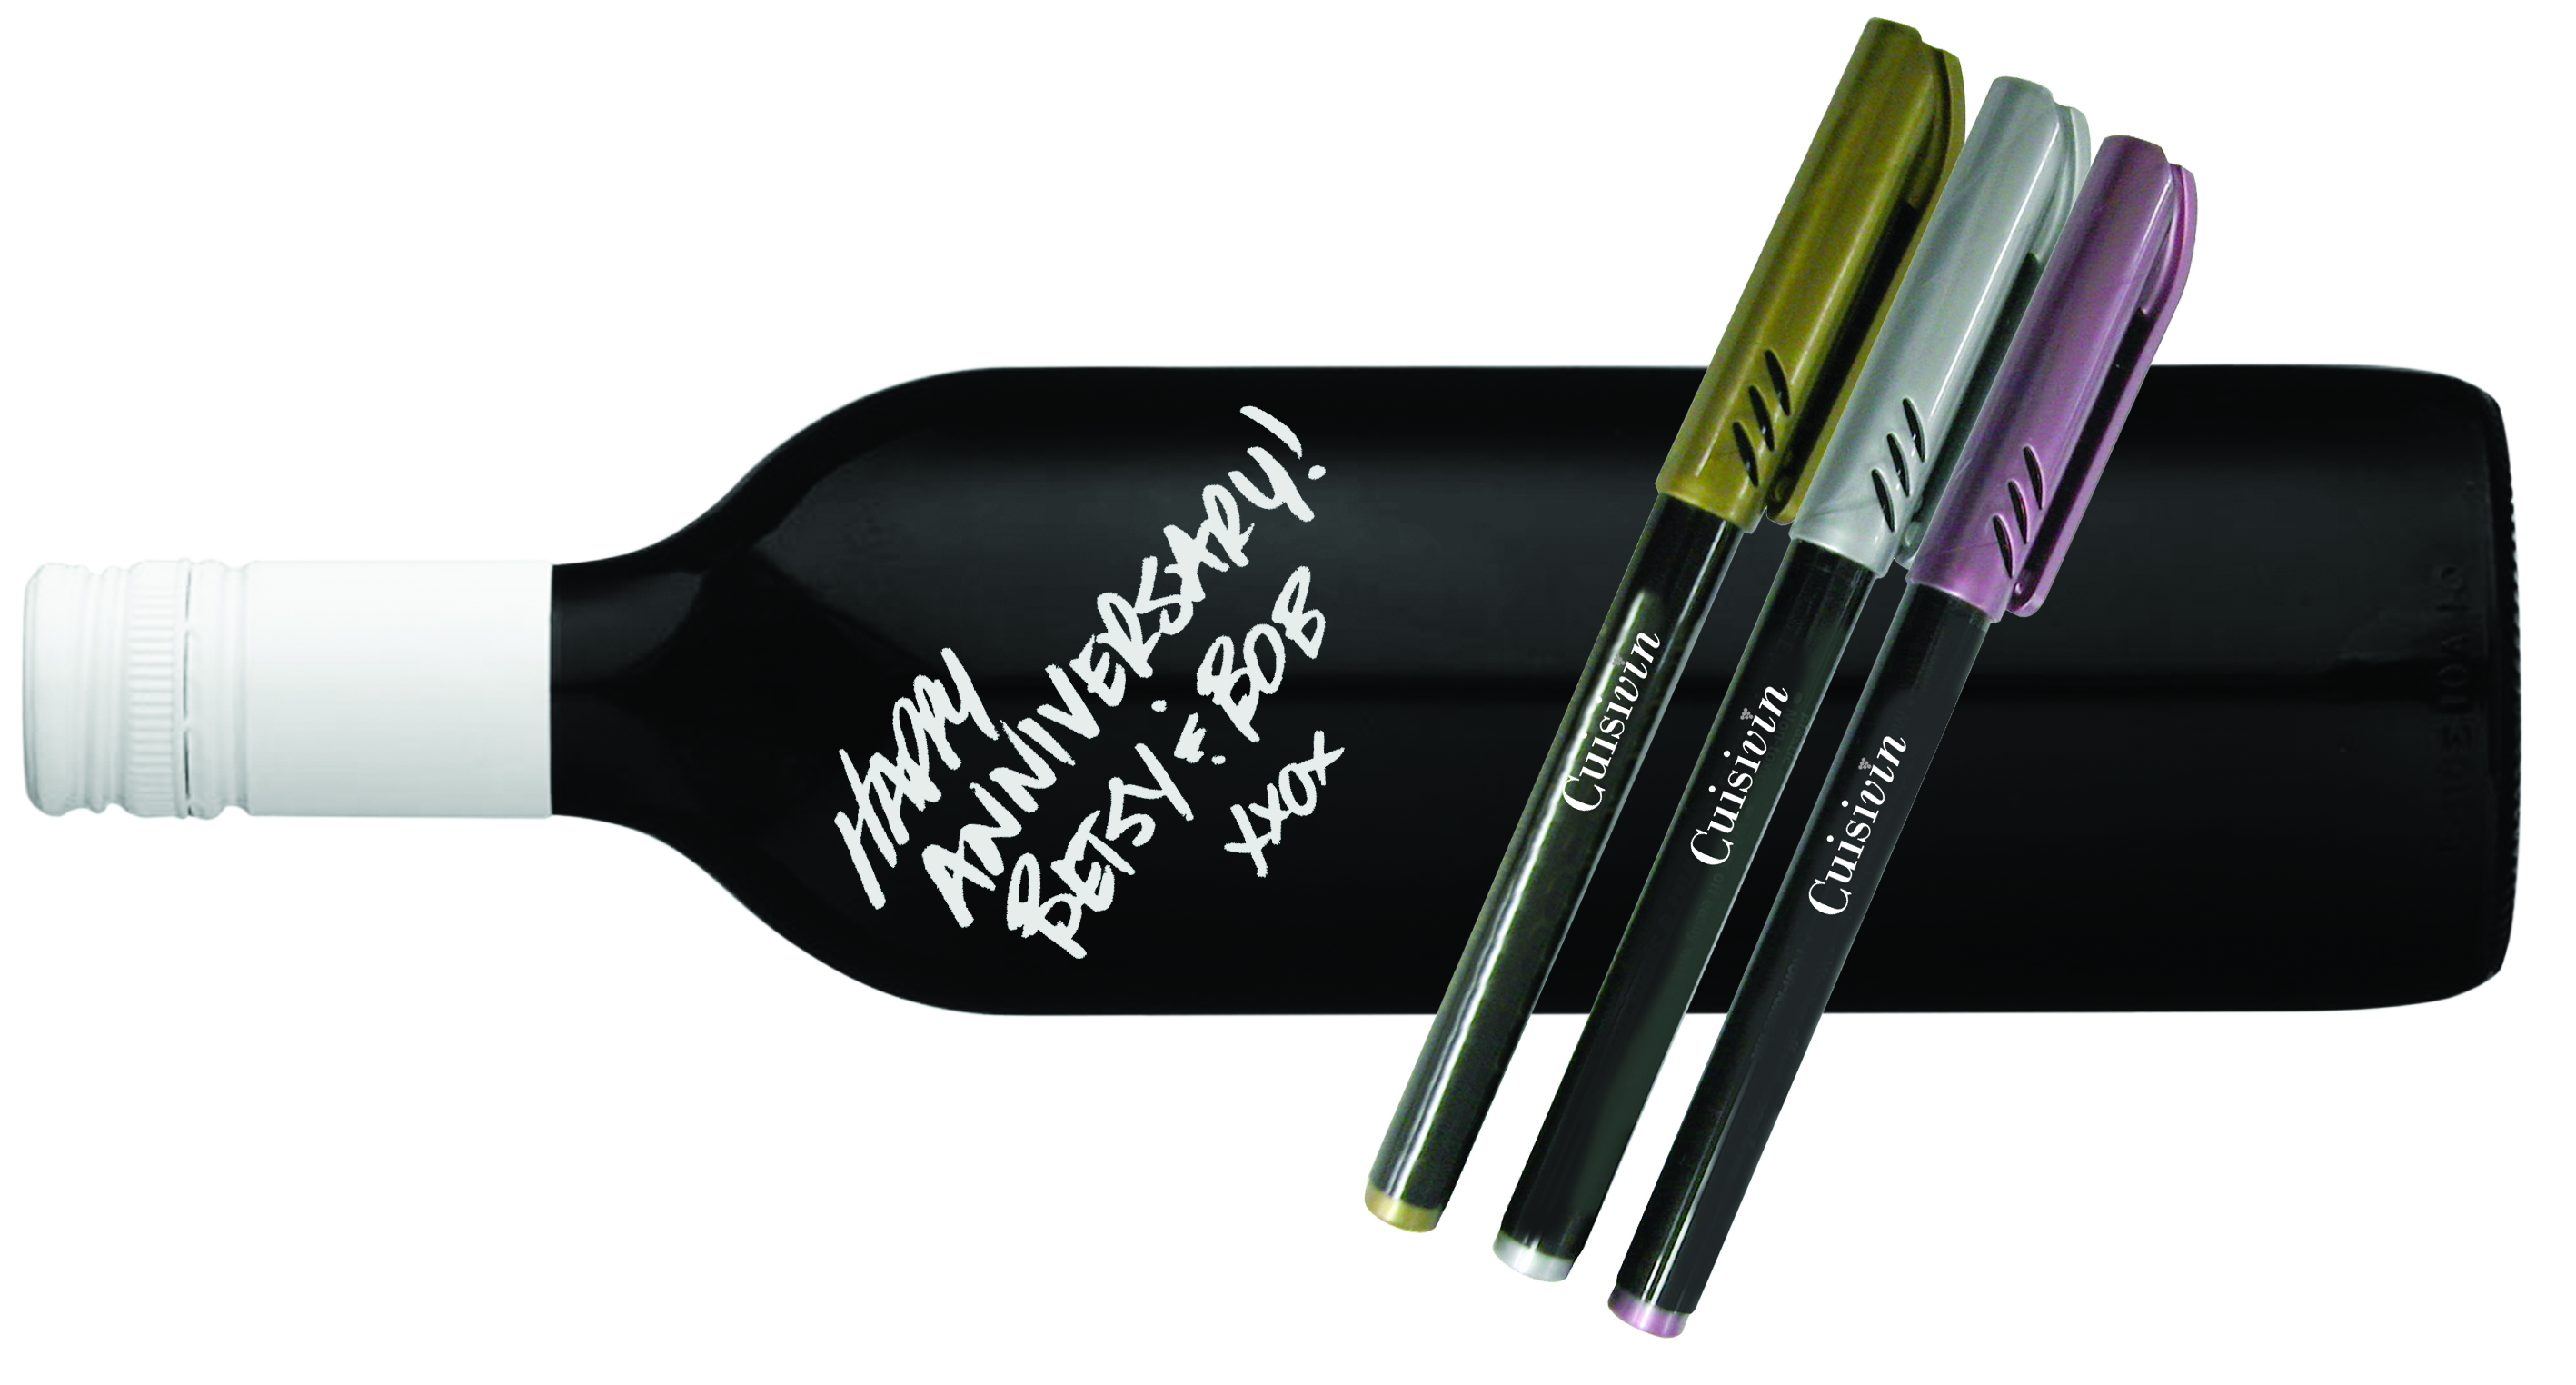 Cuisivin Wine Glass Metallic Markers Cuisivin